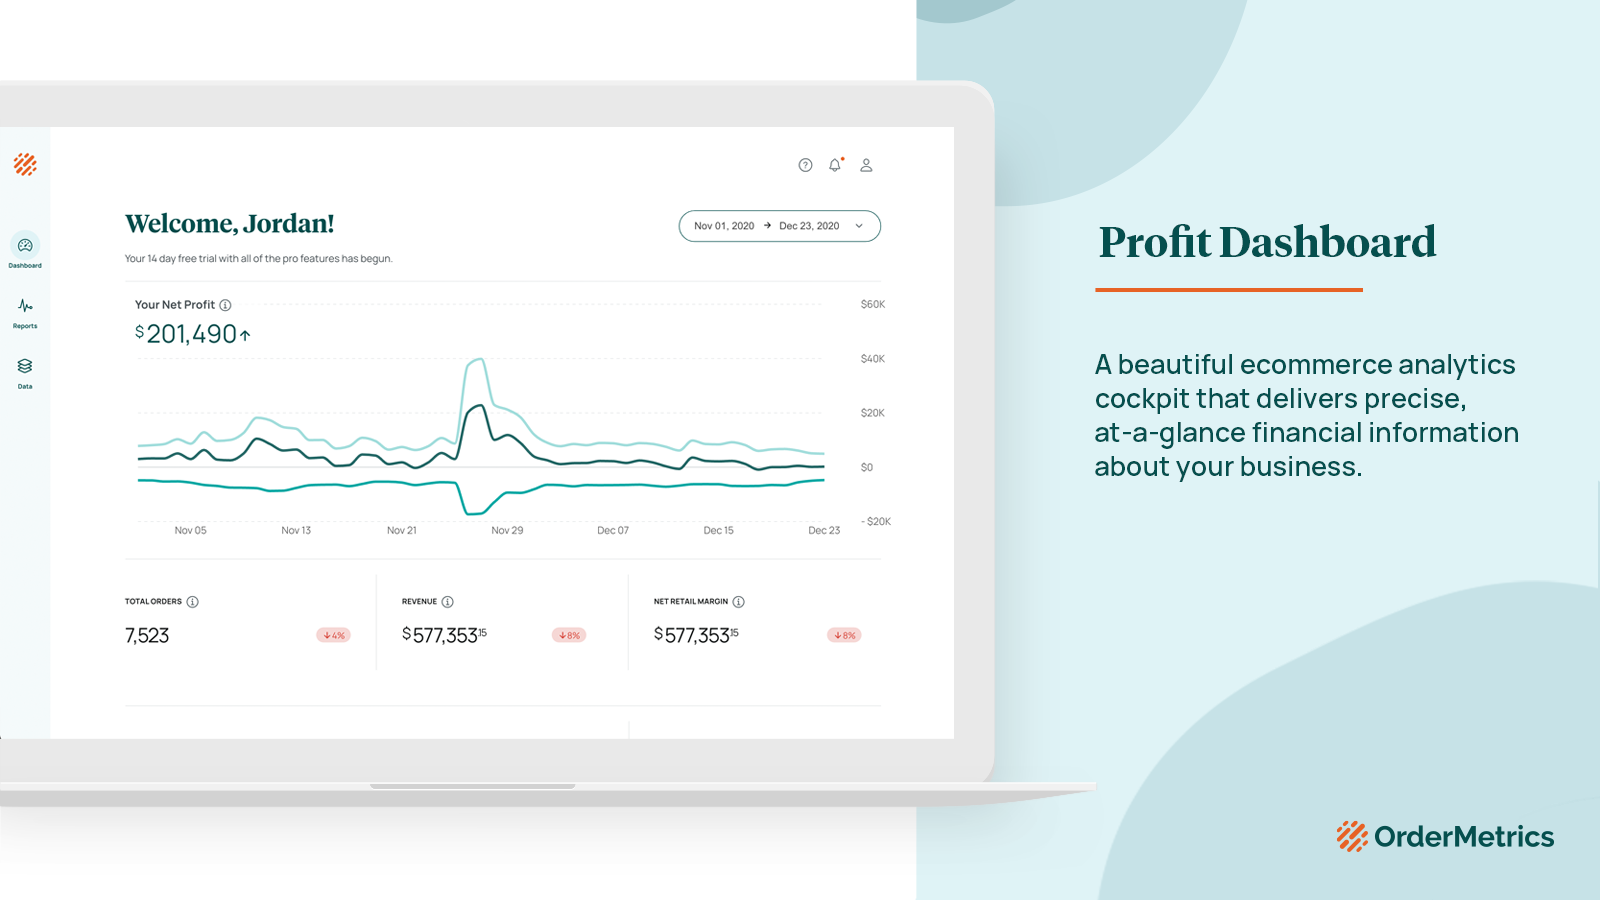 Beautiful, at-a-glance ecommerce analytics and financial info.